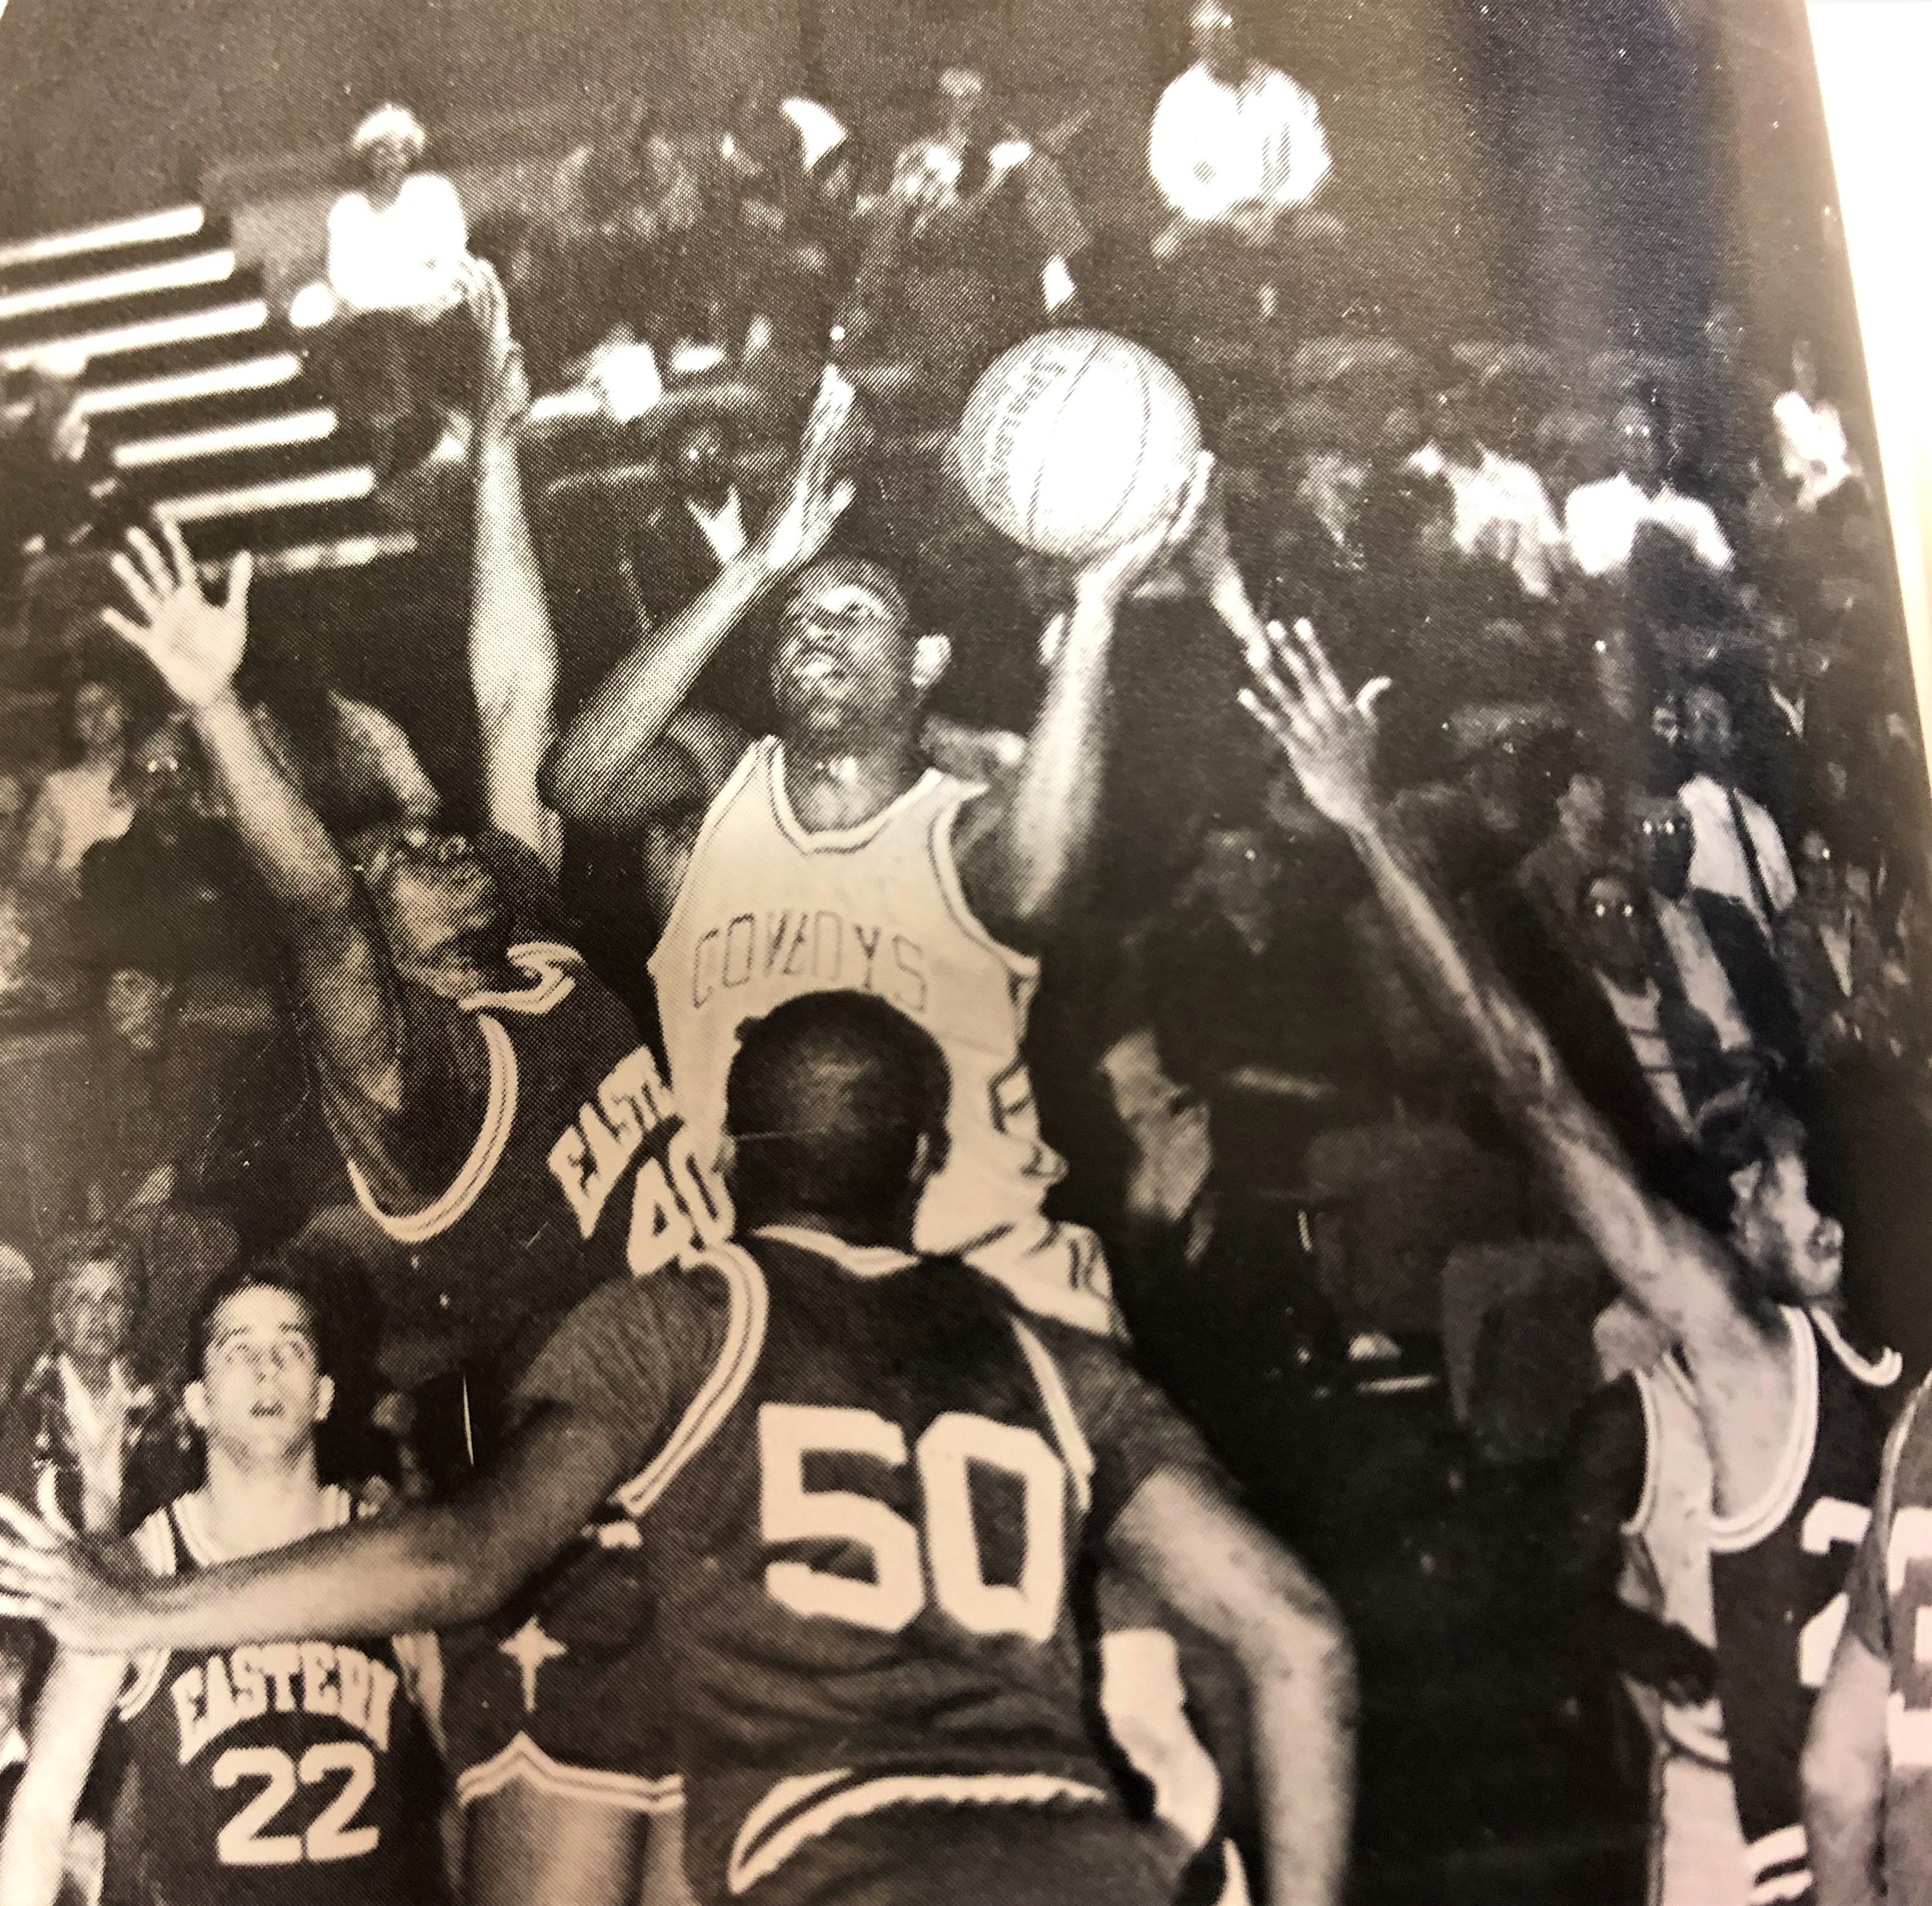 Langston reflects on memorable 1987-88 season for Hardin-Simmons men's basketball team